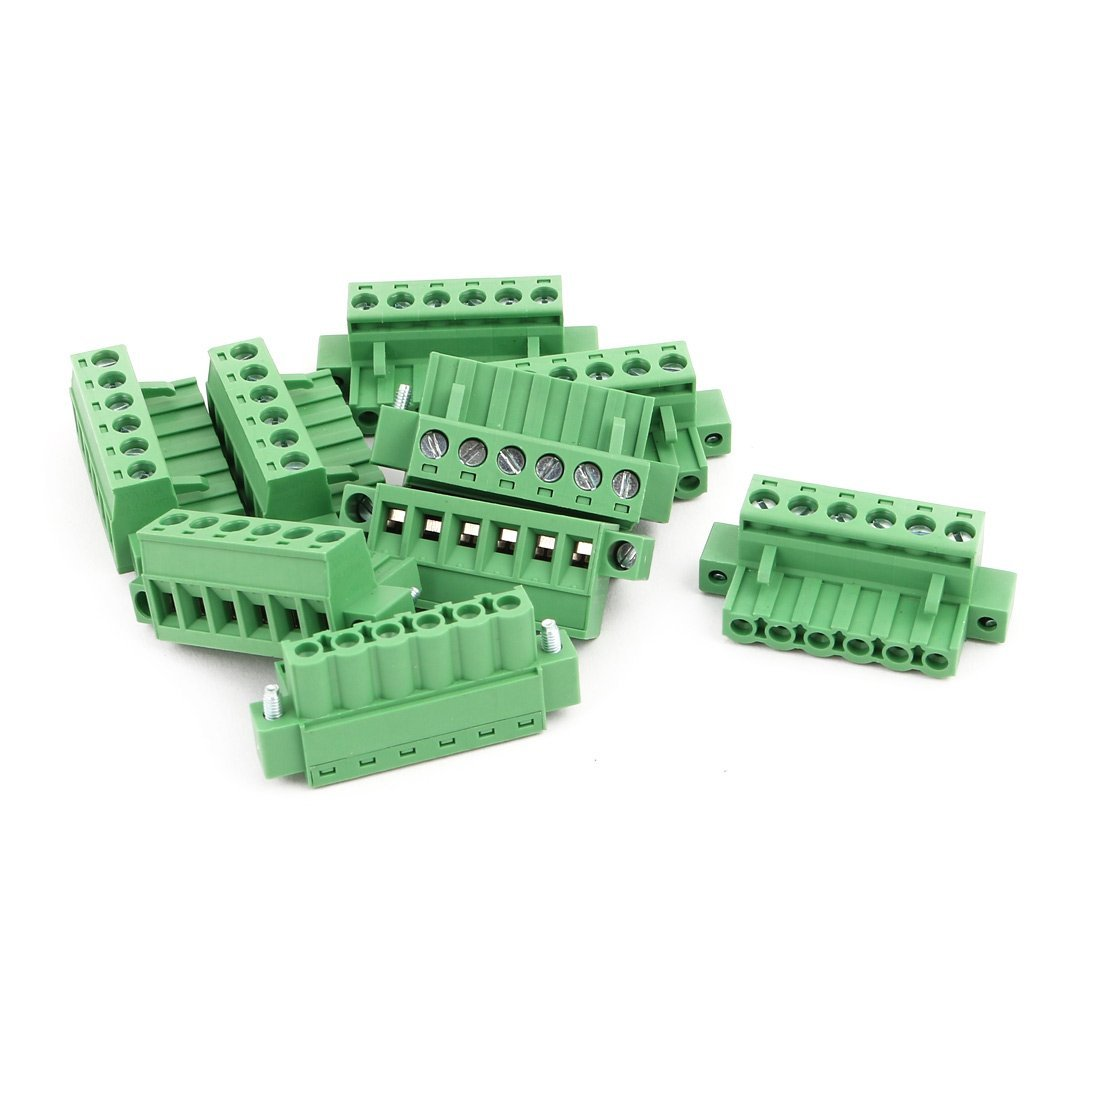 uxcell 10Pcs LC1M AC300V 15A 5.08mm Pitch 6P PCB Mount Terminal Block Wire Connector